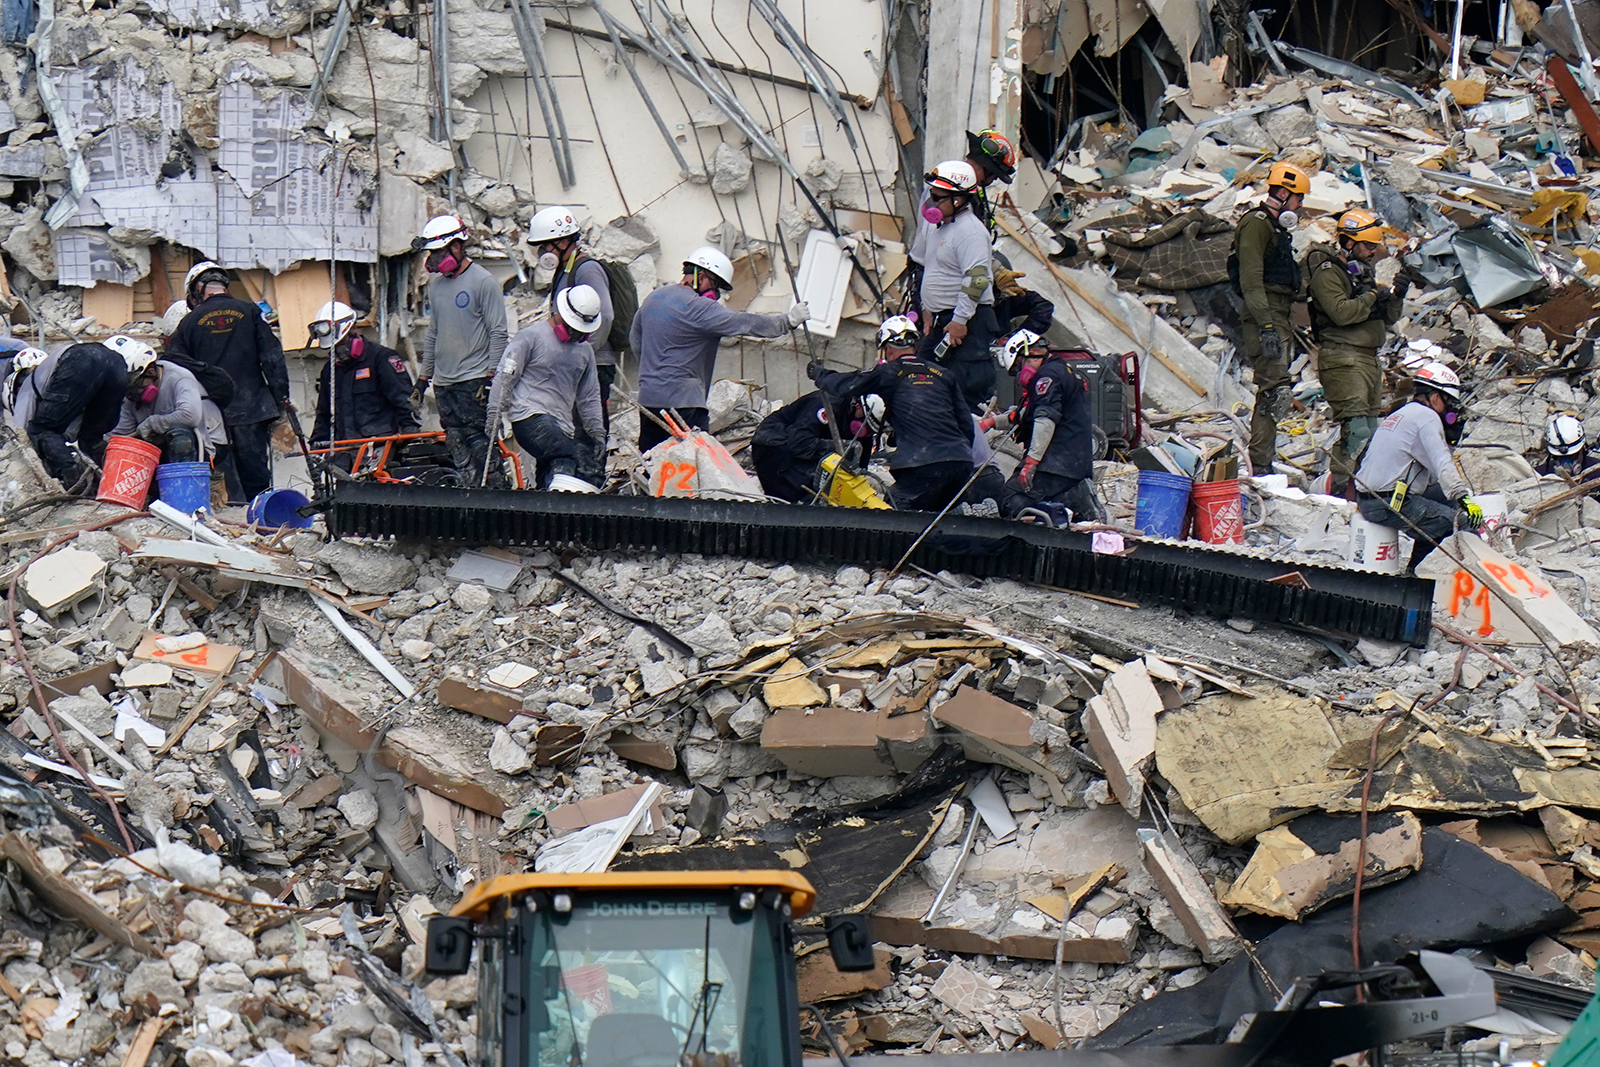 Federal agency to investigate Florida building collapse